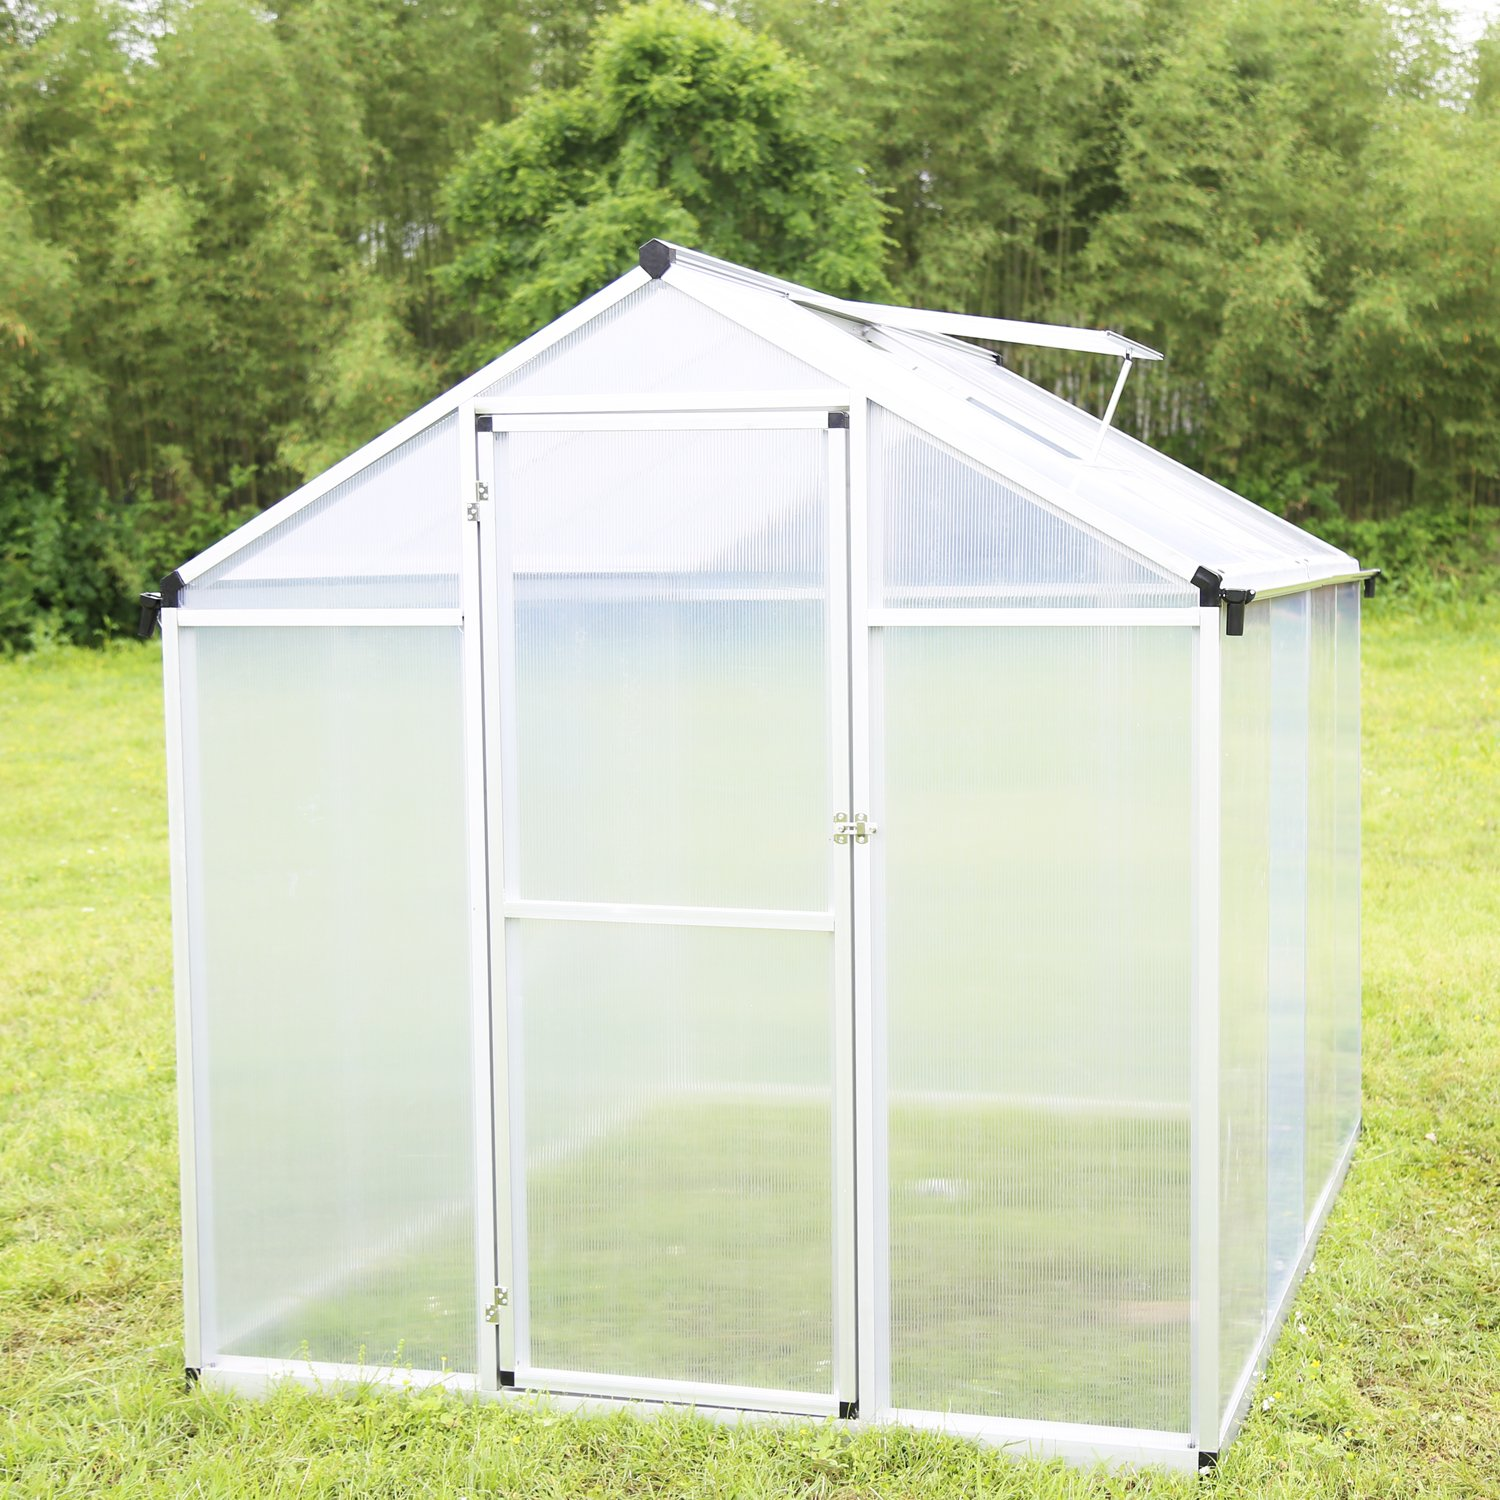 Cheap Greenhouse 4 X 4, find Greenhouse 4 X 4 deals on line